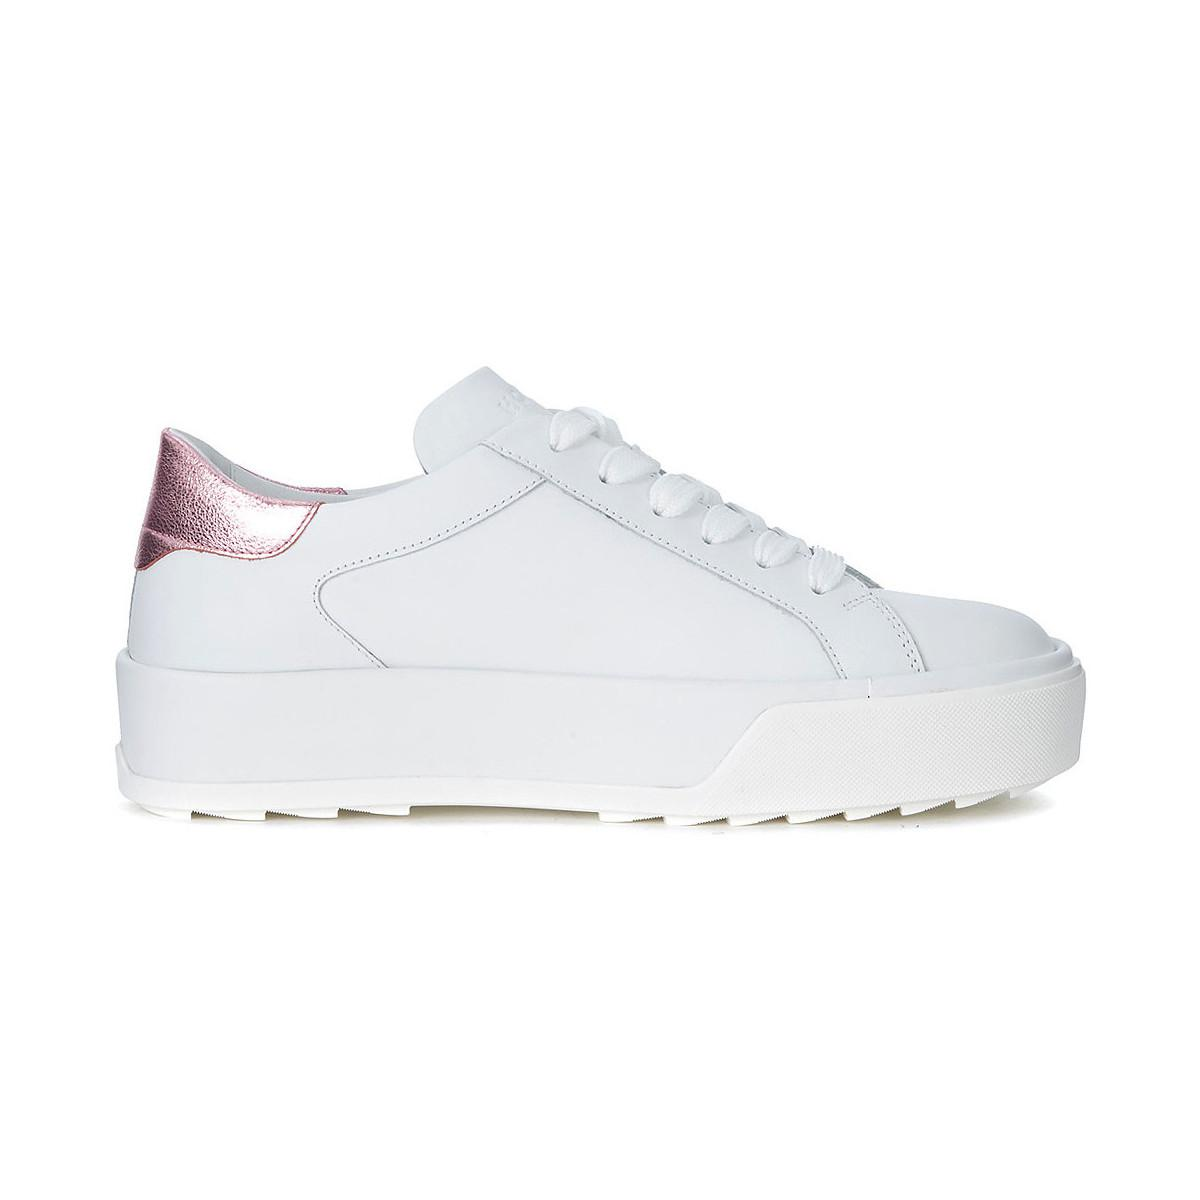 Hogan H320 White Leather And Metal Pink Snaker Genuine Reliable Cheap Online Buy Cheap In China Free Shipping Ebay atgkJ